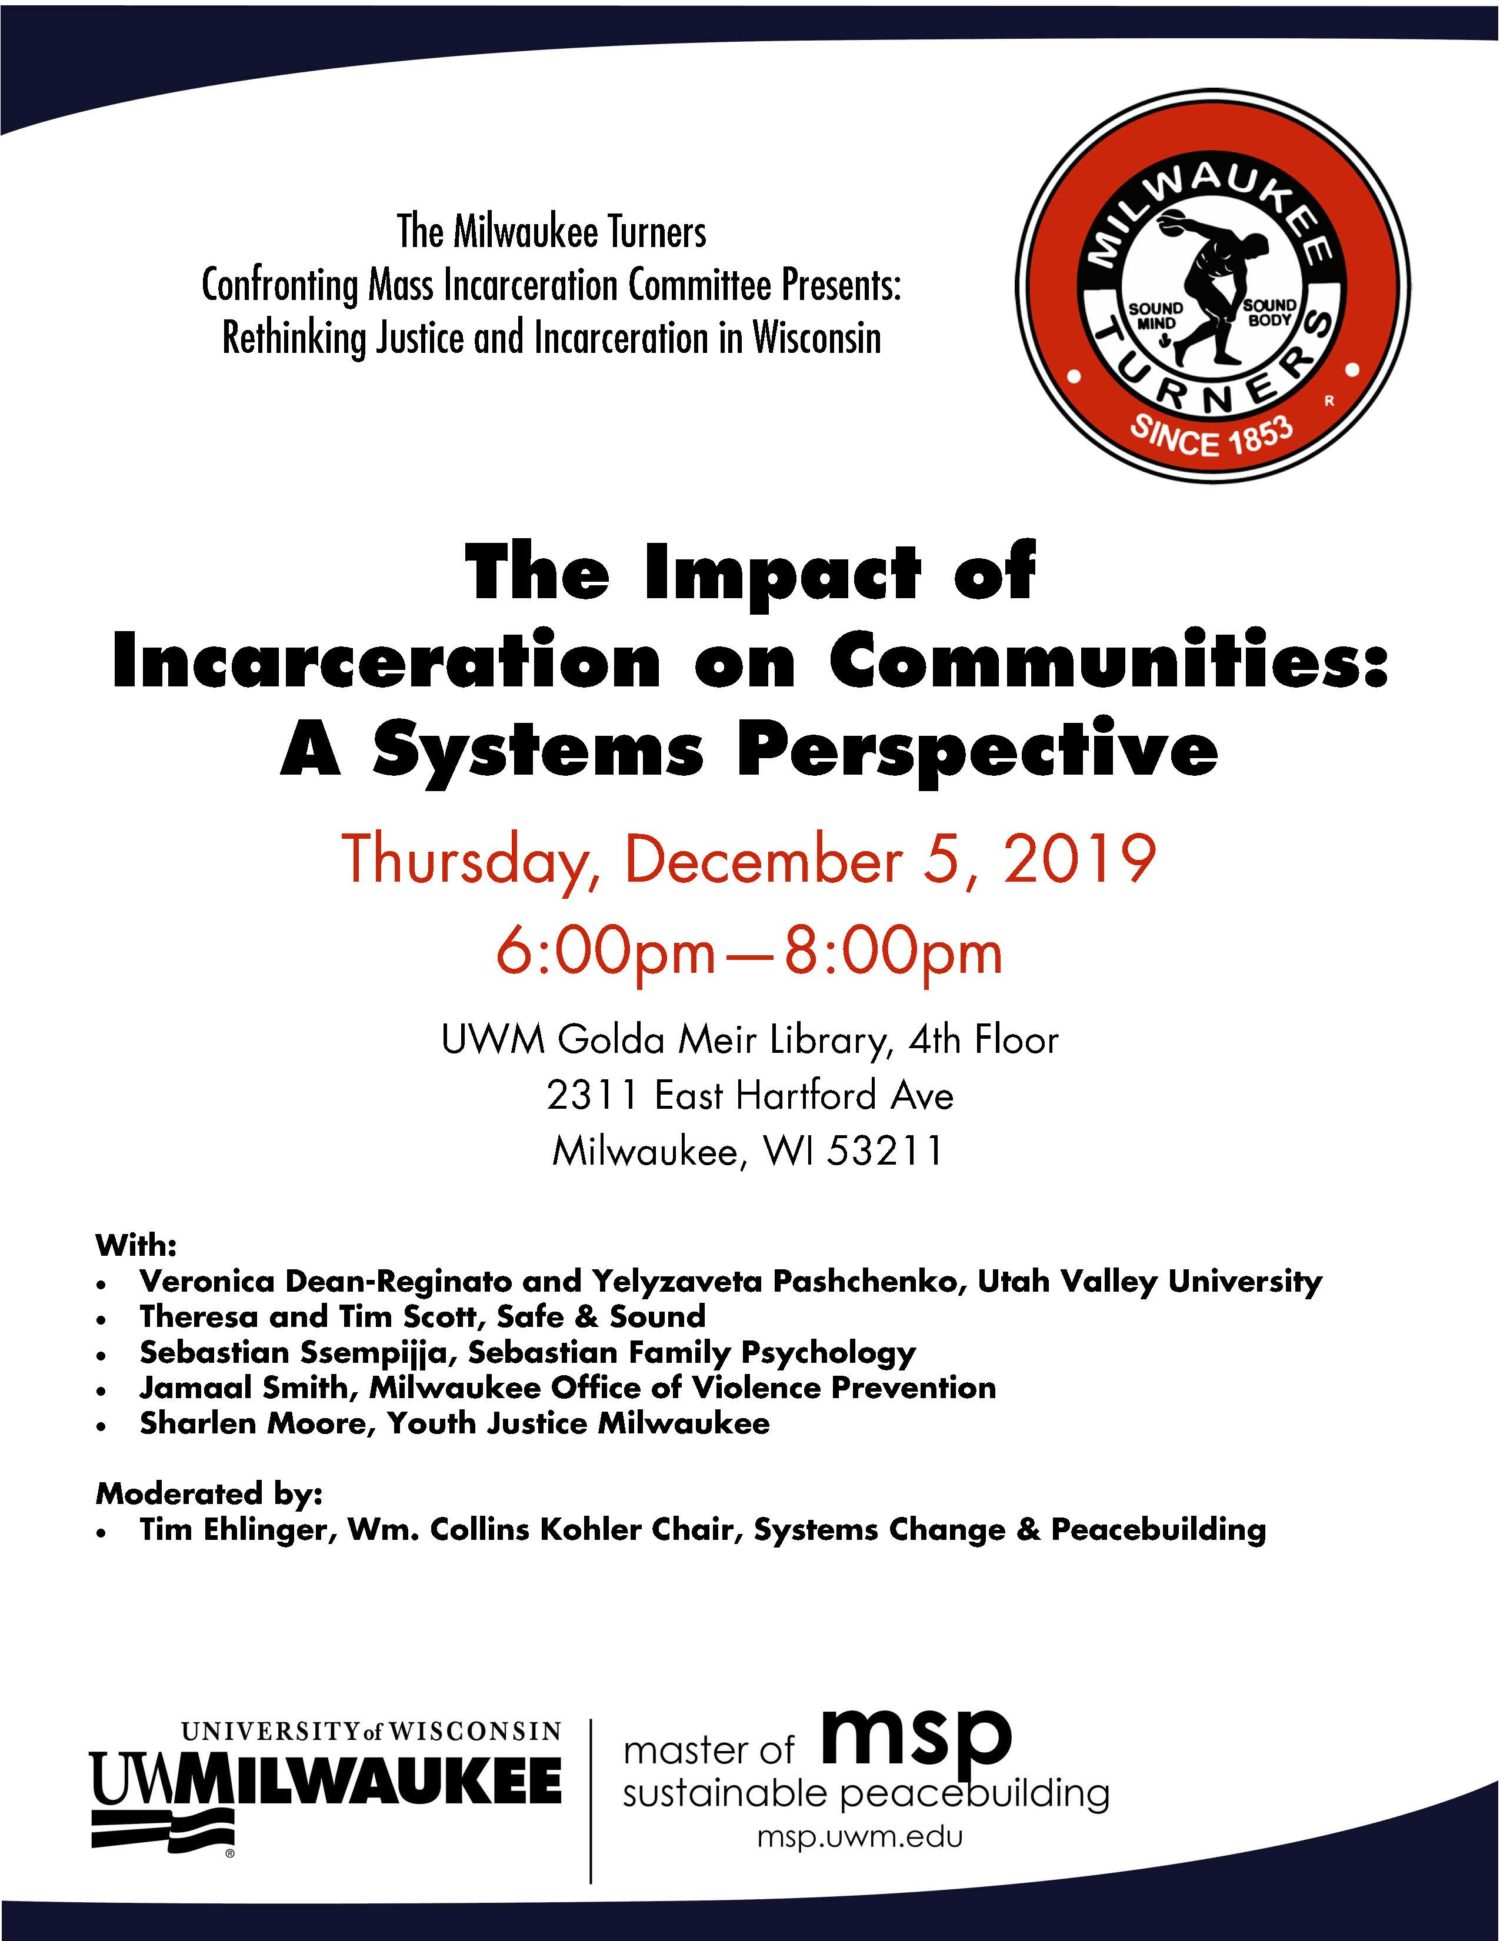 Details For Event 17516 – The Impact of Incarceration on Communities: A Systems Perspective